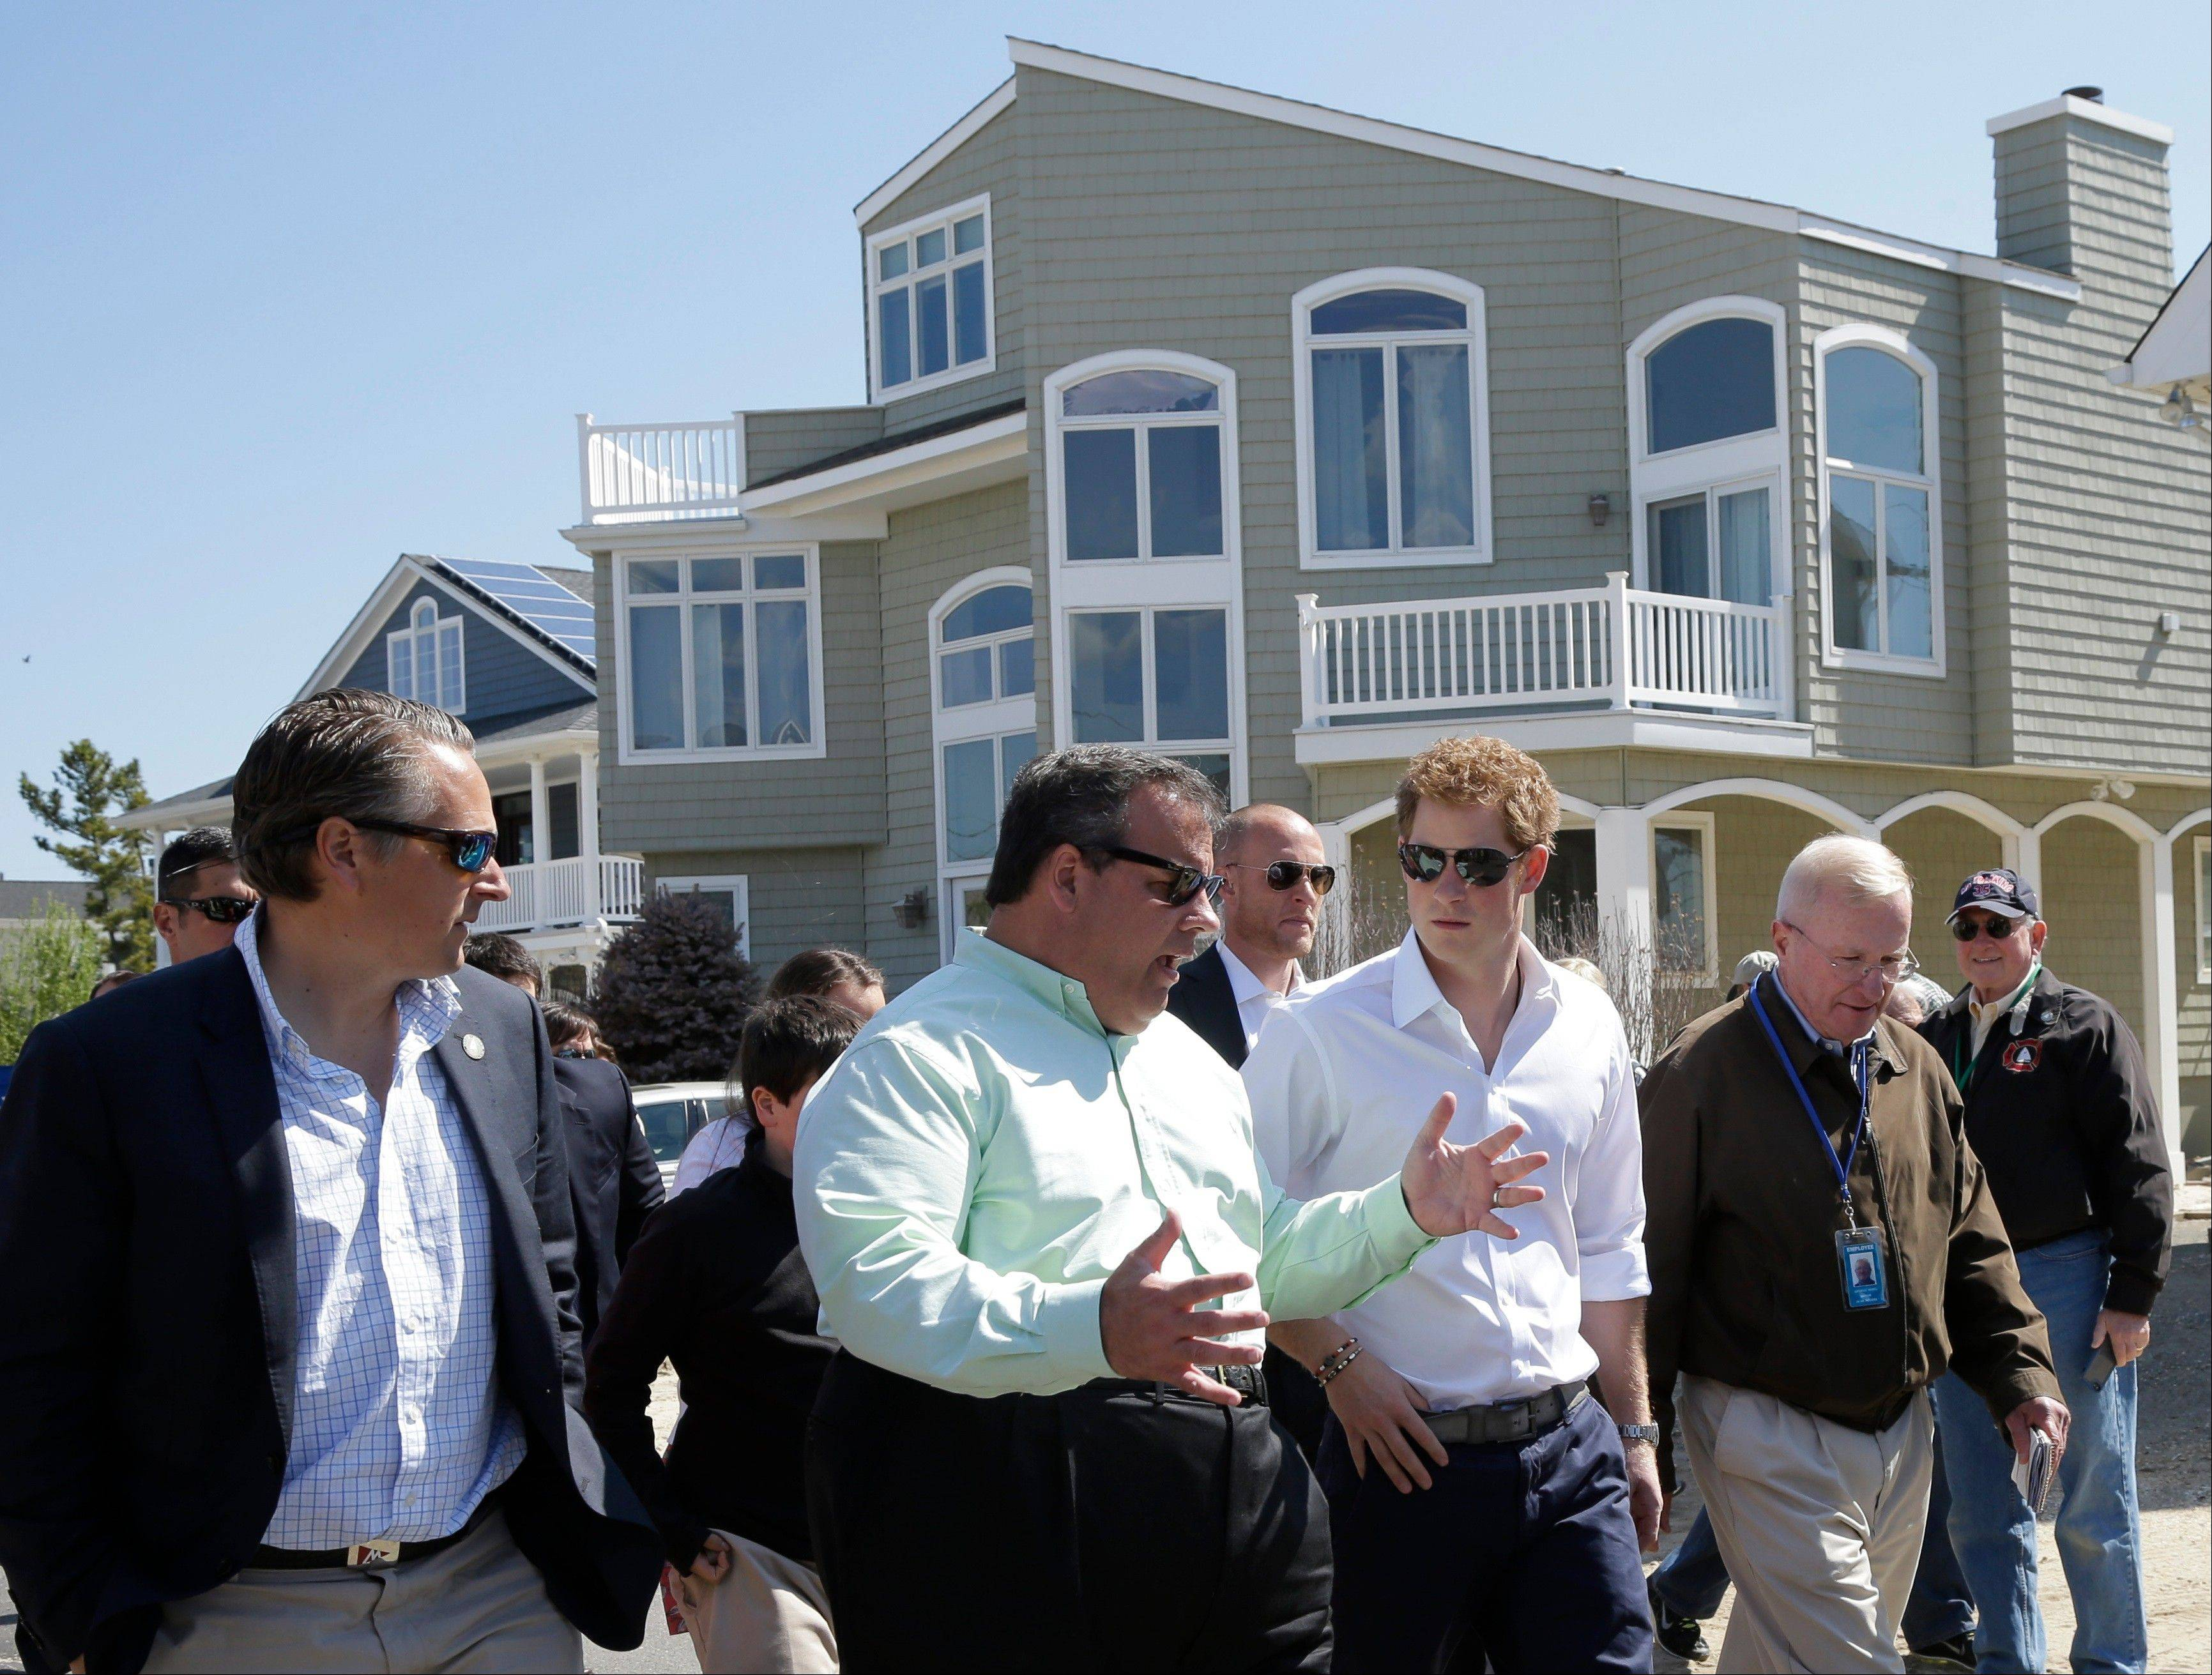 New Jersey Gov. Chris Christie, center left, walks with Britain's Prince Harry, center, while visiting the area hit by Superstorm Sandy, Tuesday, May 14, 2013, in Seaside Heights, N.J.